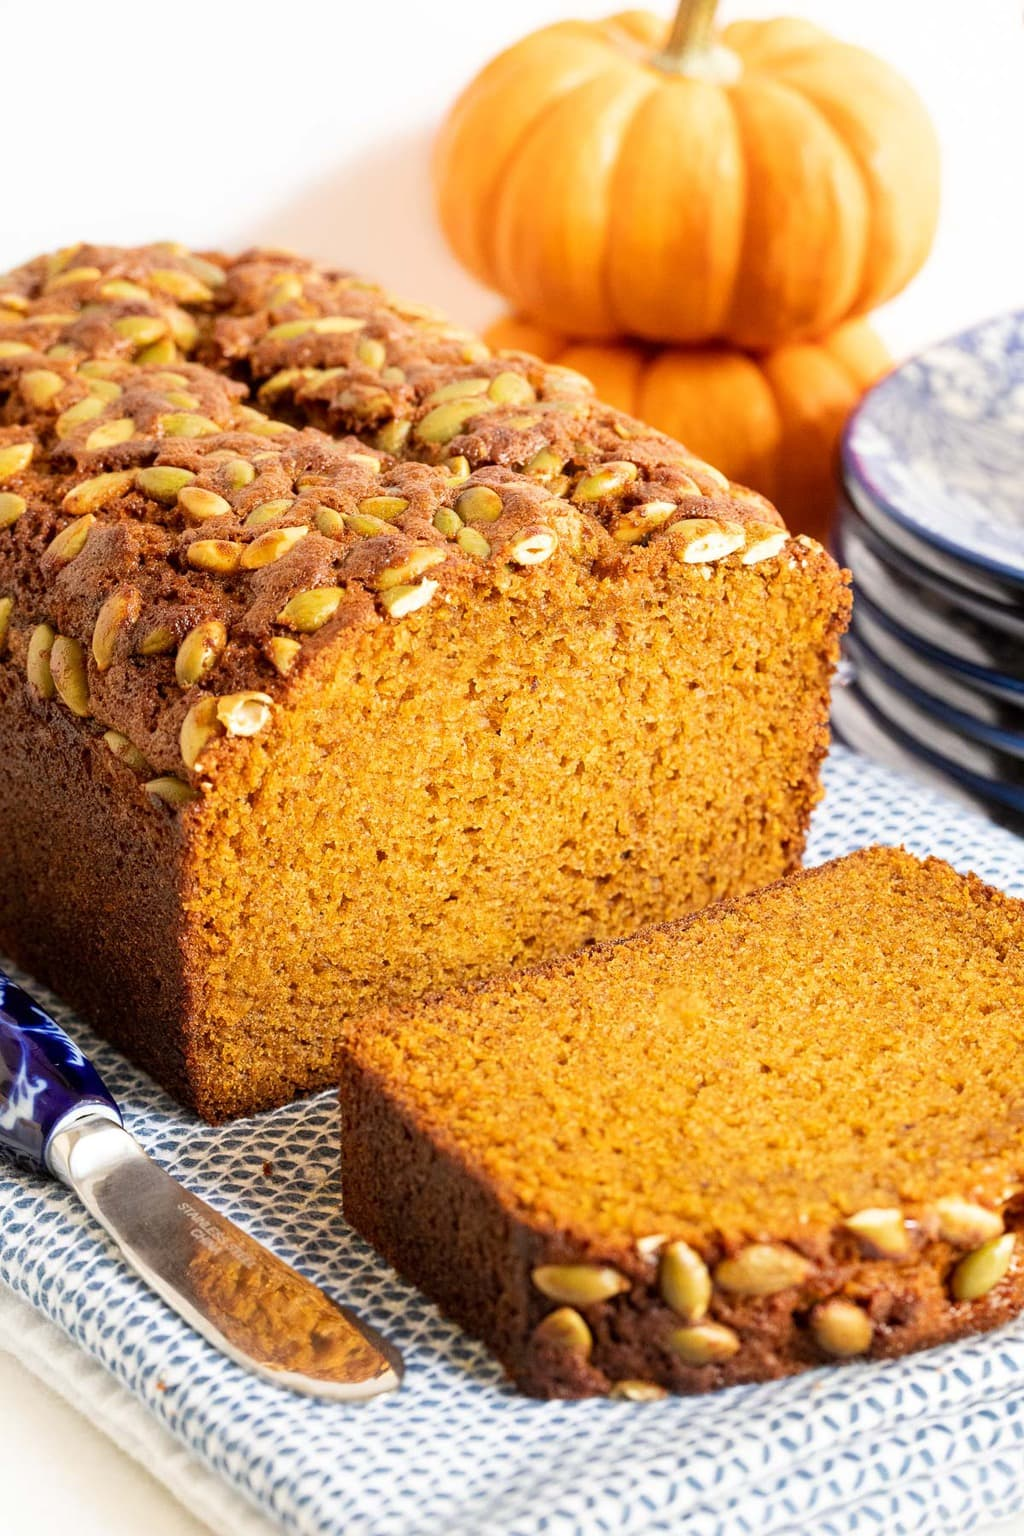 Vertical close up picture of Pumpkin Bread topped with pepitas and sliced